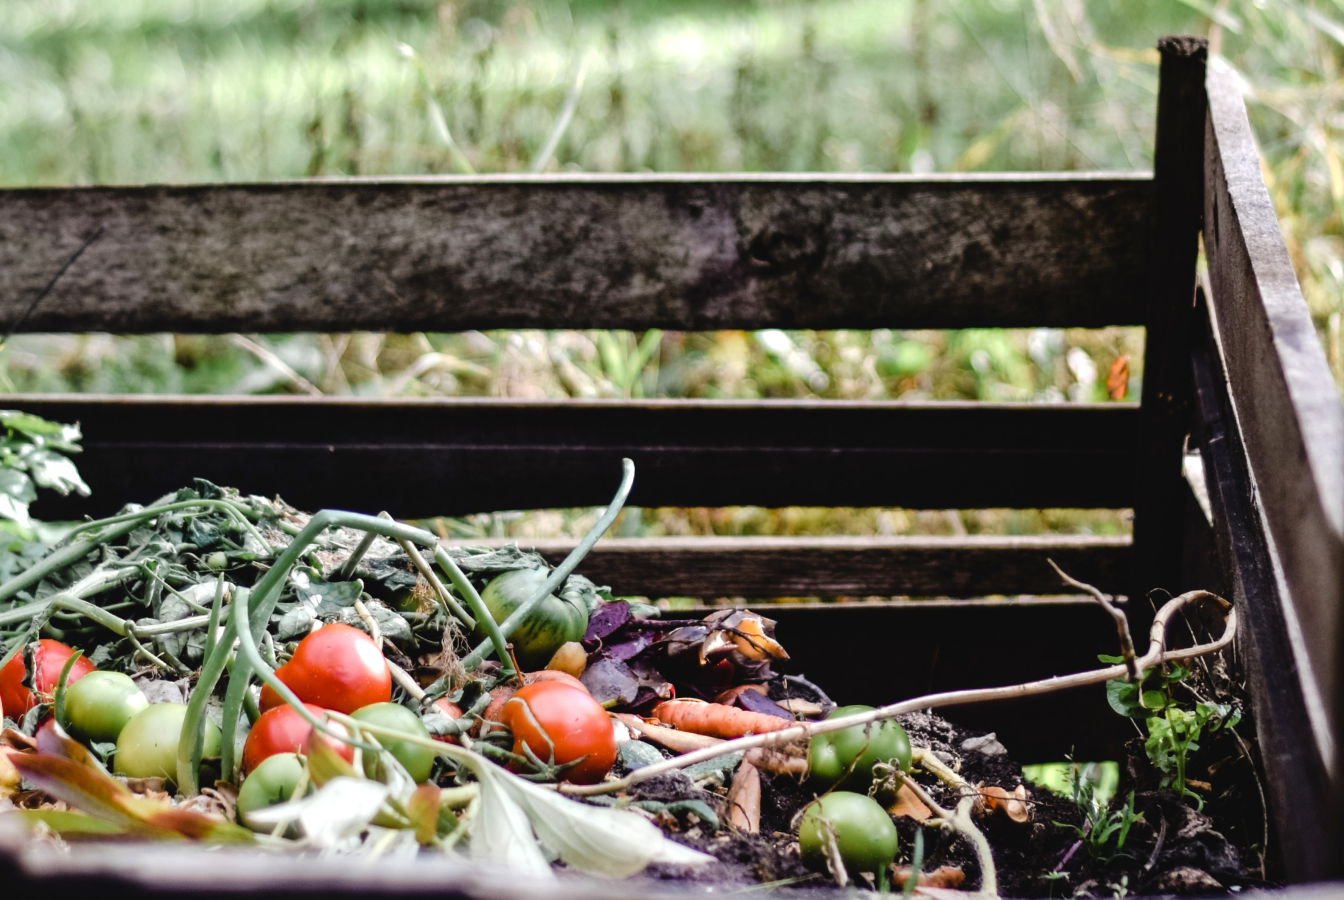 A backyard compost pile which is a environmentally-friendly way to reduce your carbon footprint.